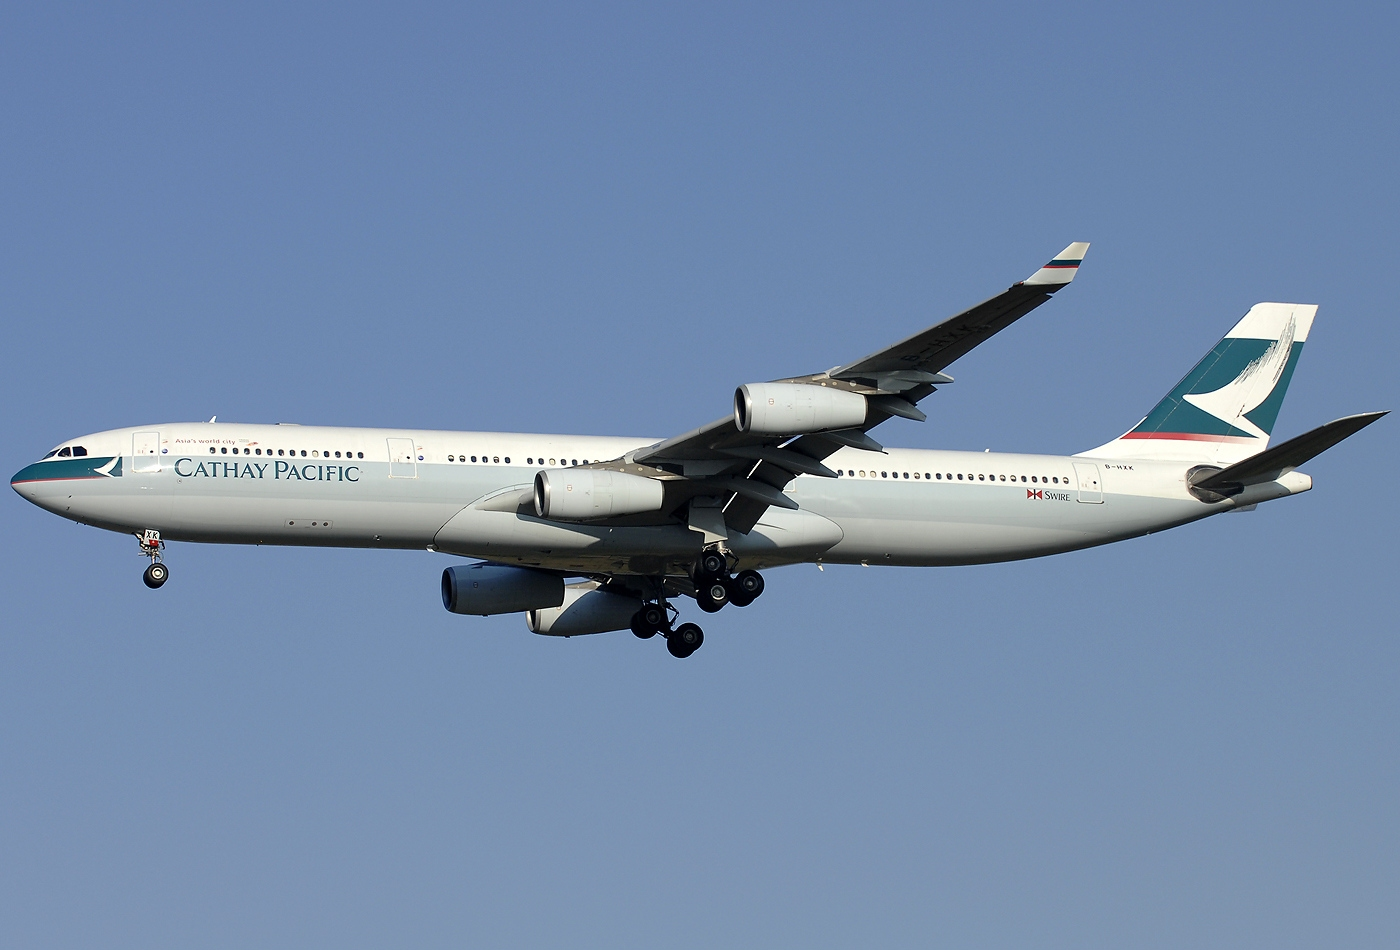 file airbus a340 313x cathay pacific airways wikipedia. Black Bedroom Furniture Sets. Home Design Ideas